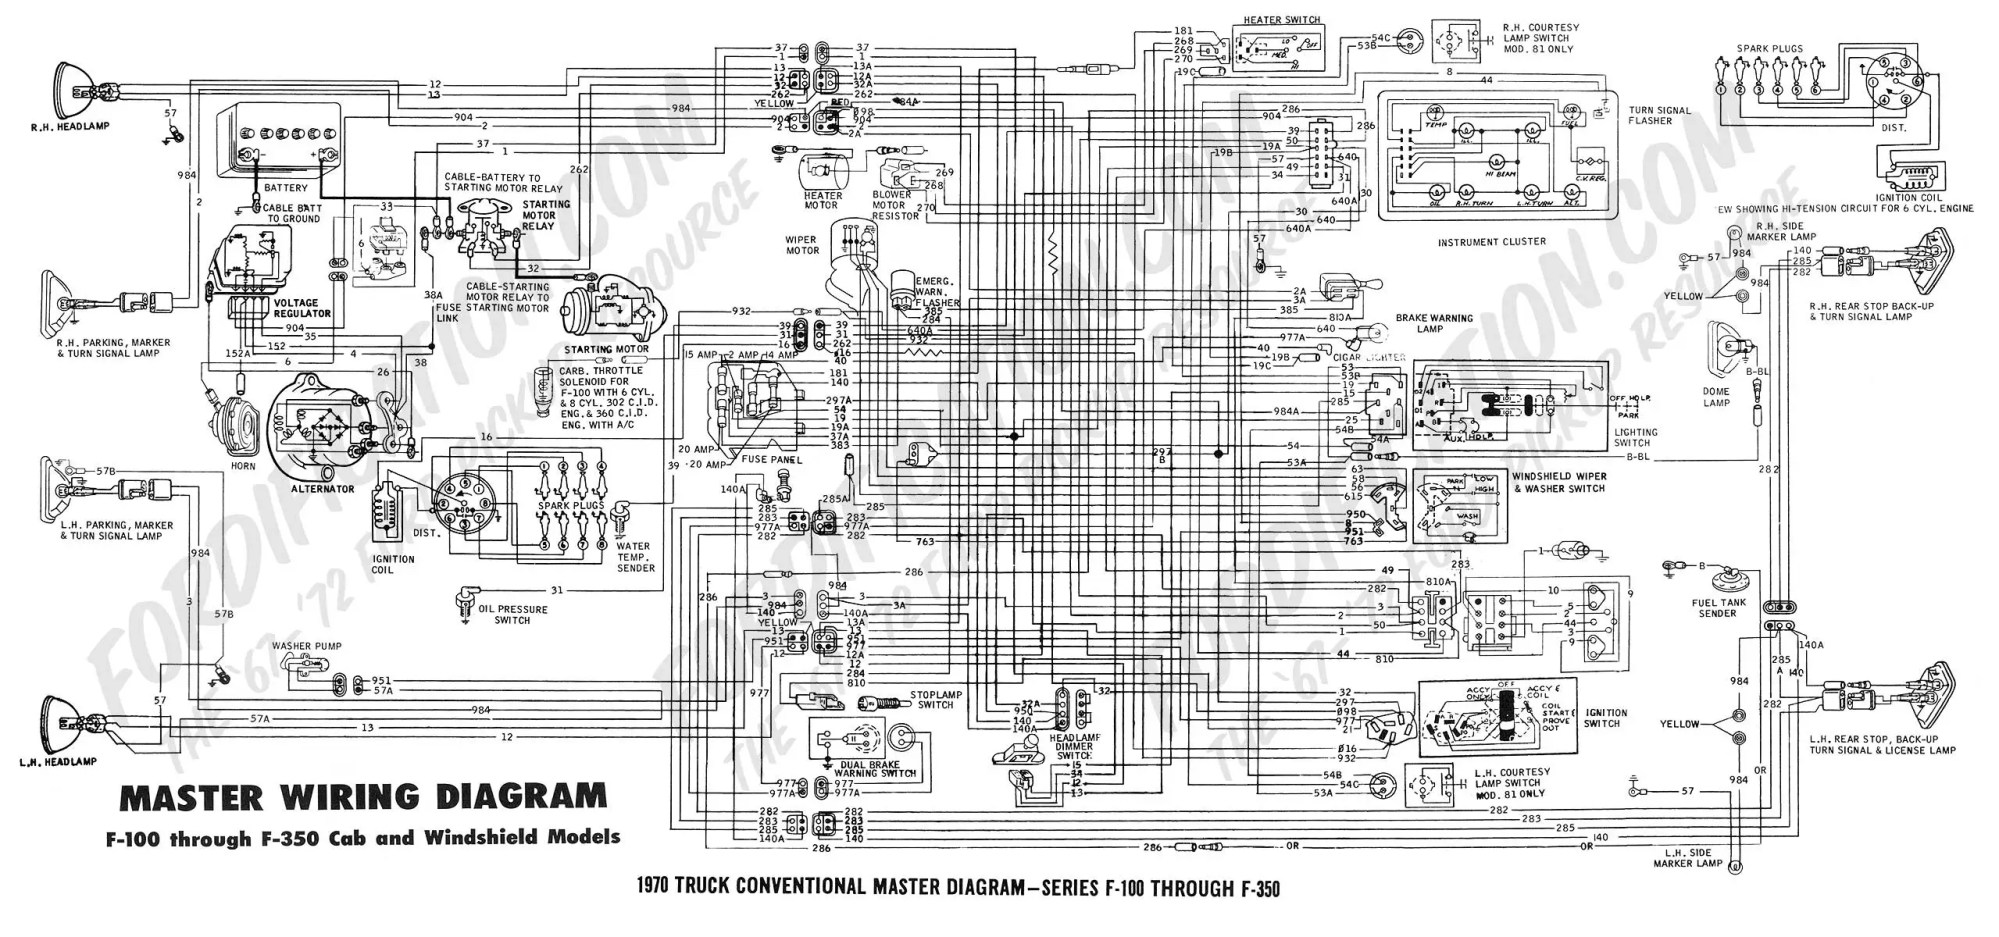 hight resolution of 1970 f100 wiring diagram ford truck technical drawings and schematics section h wiring1970 f 100 f250 master diagram